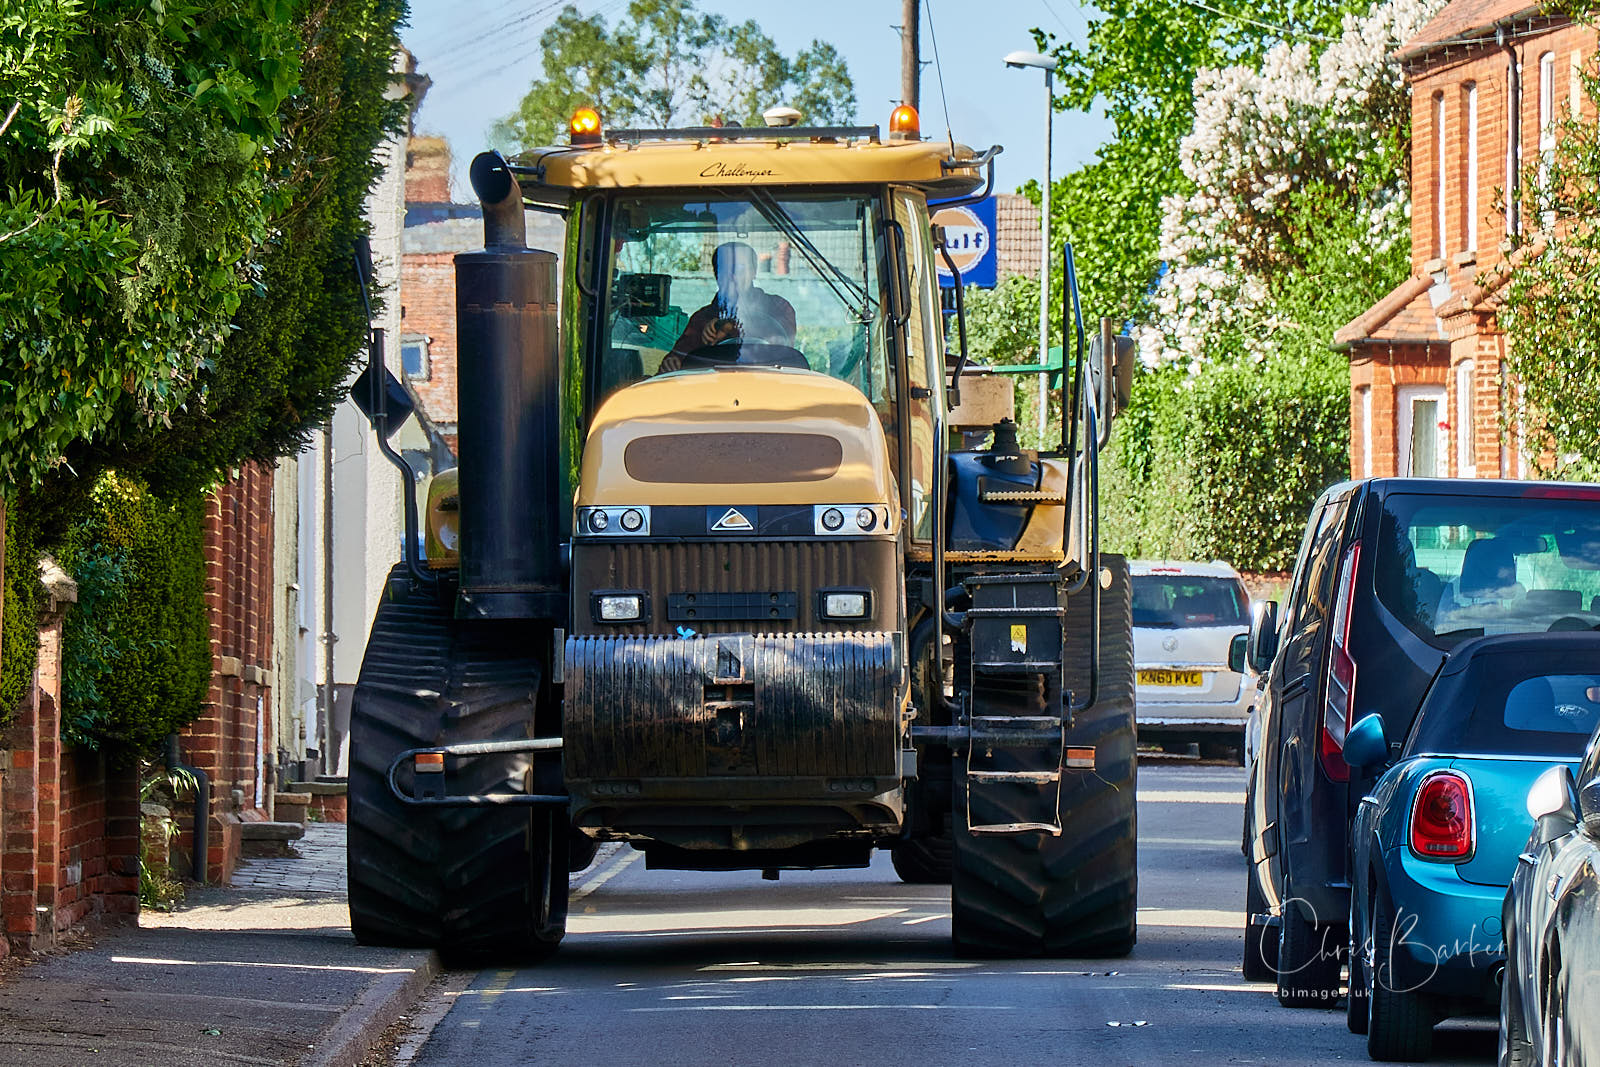 Large track-laying tractor squeezing down a narrow street.